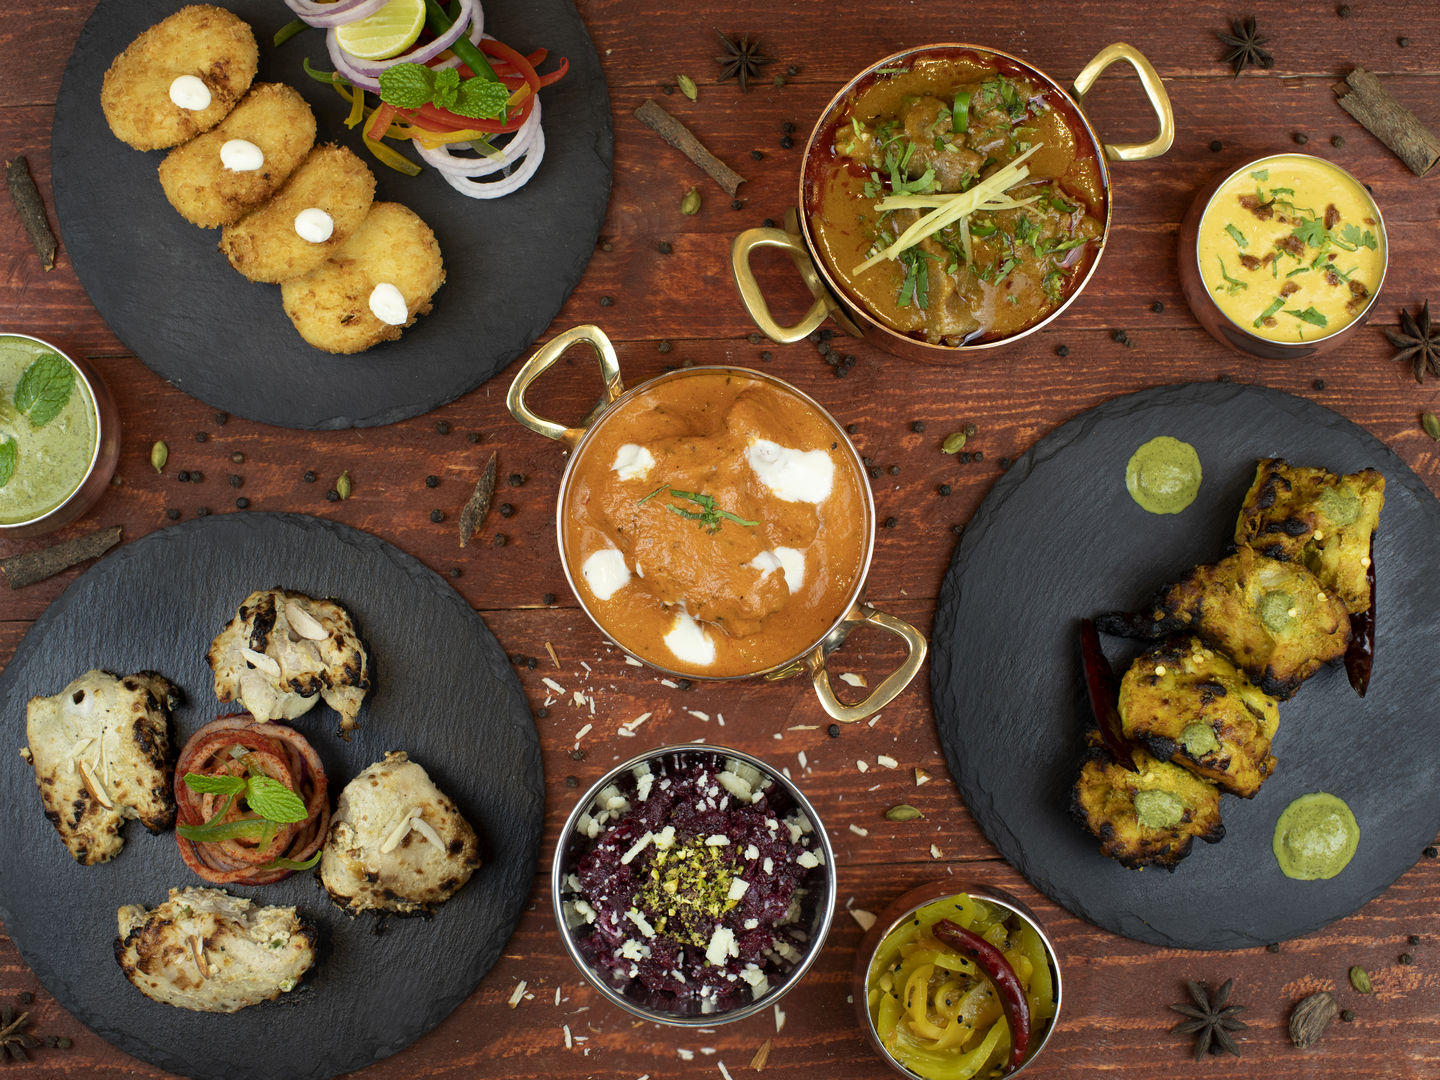 7 Major Trends That Have Shaped Dubai's Restaurant Industry